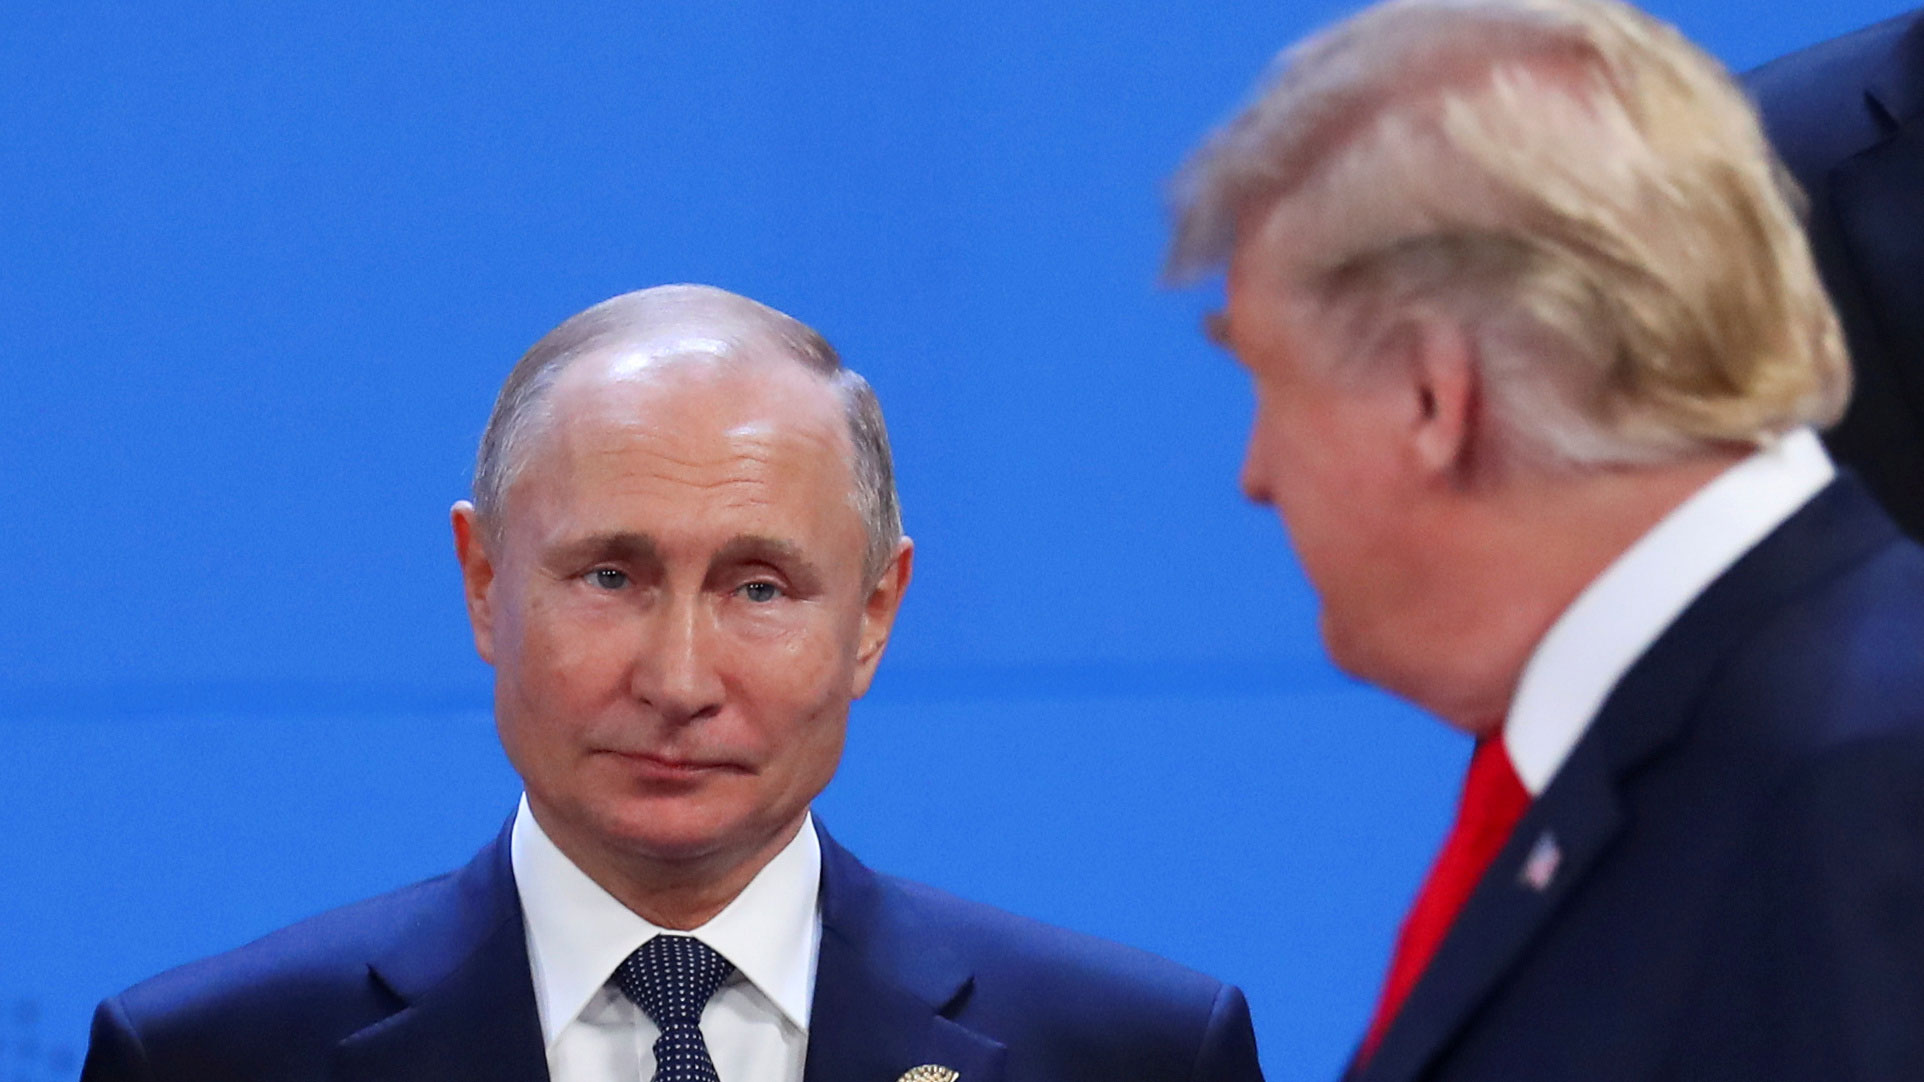 US President Donald Trump is shown out of focus in the near ground with Russia's President Vladimir Putin seen in focus in the background.